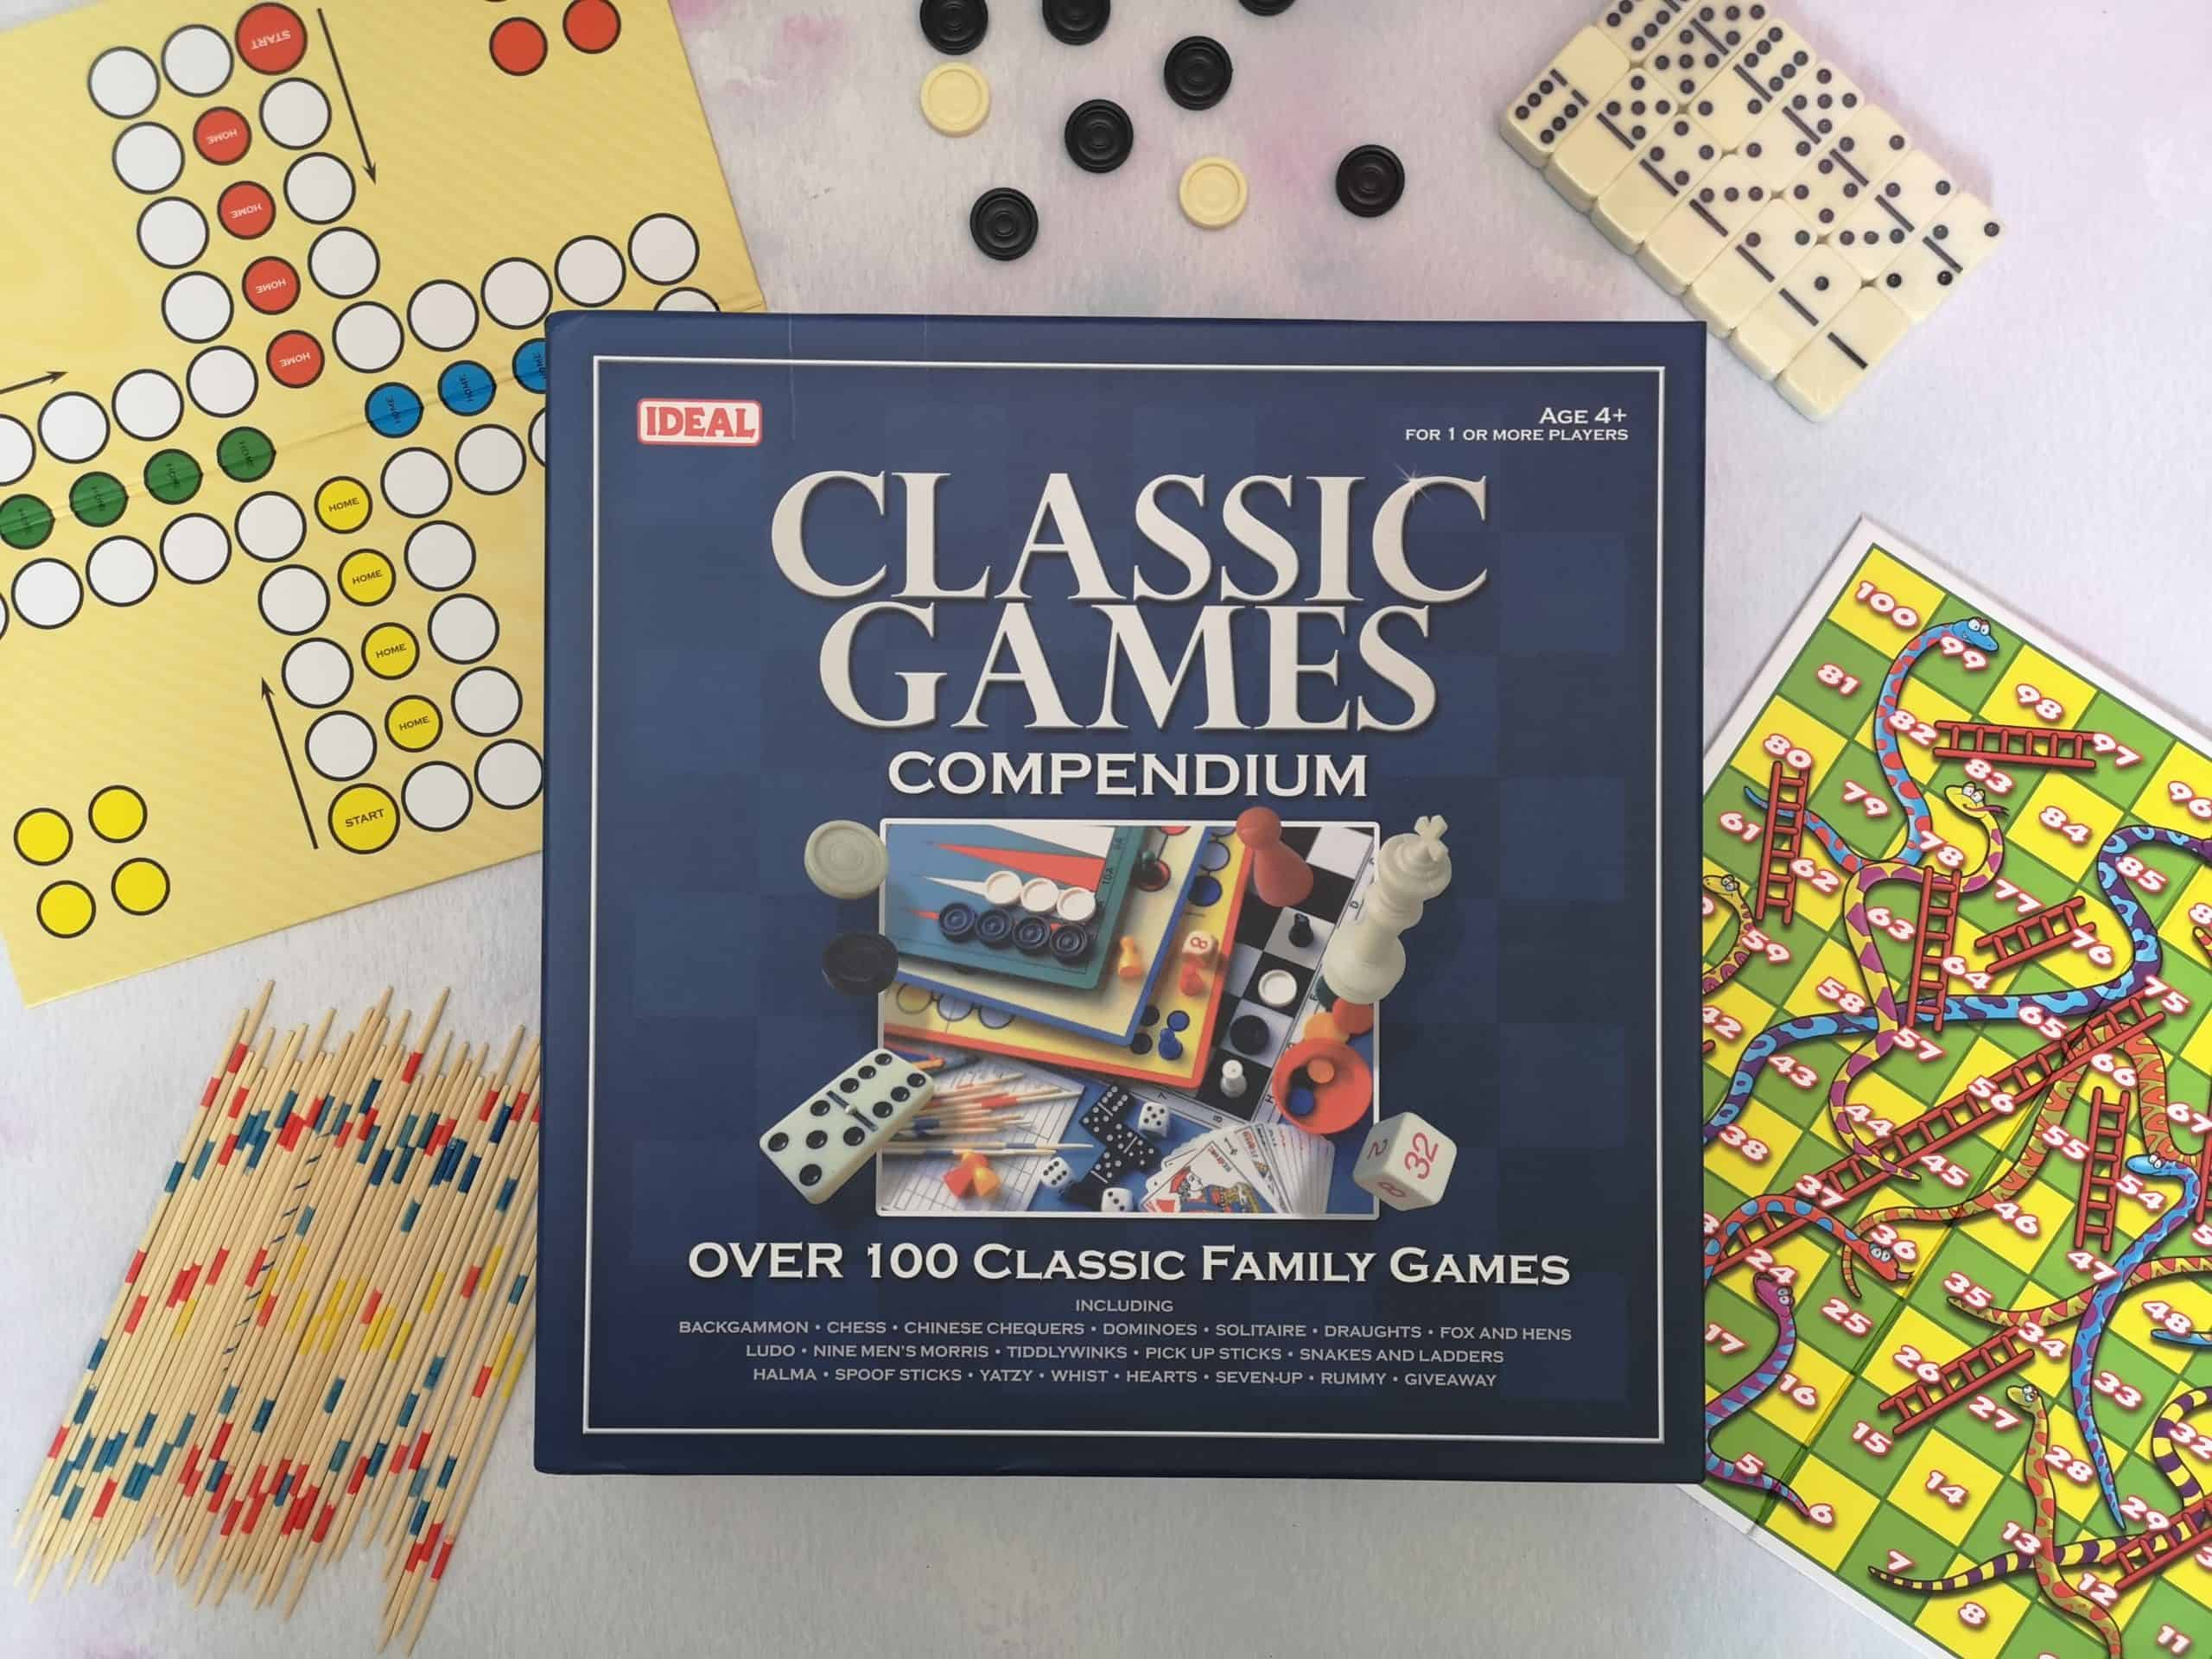 Classic Games Compendium from Ideal